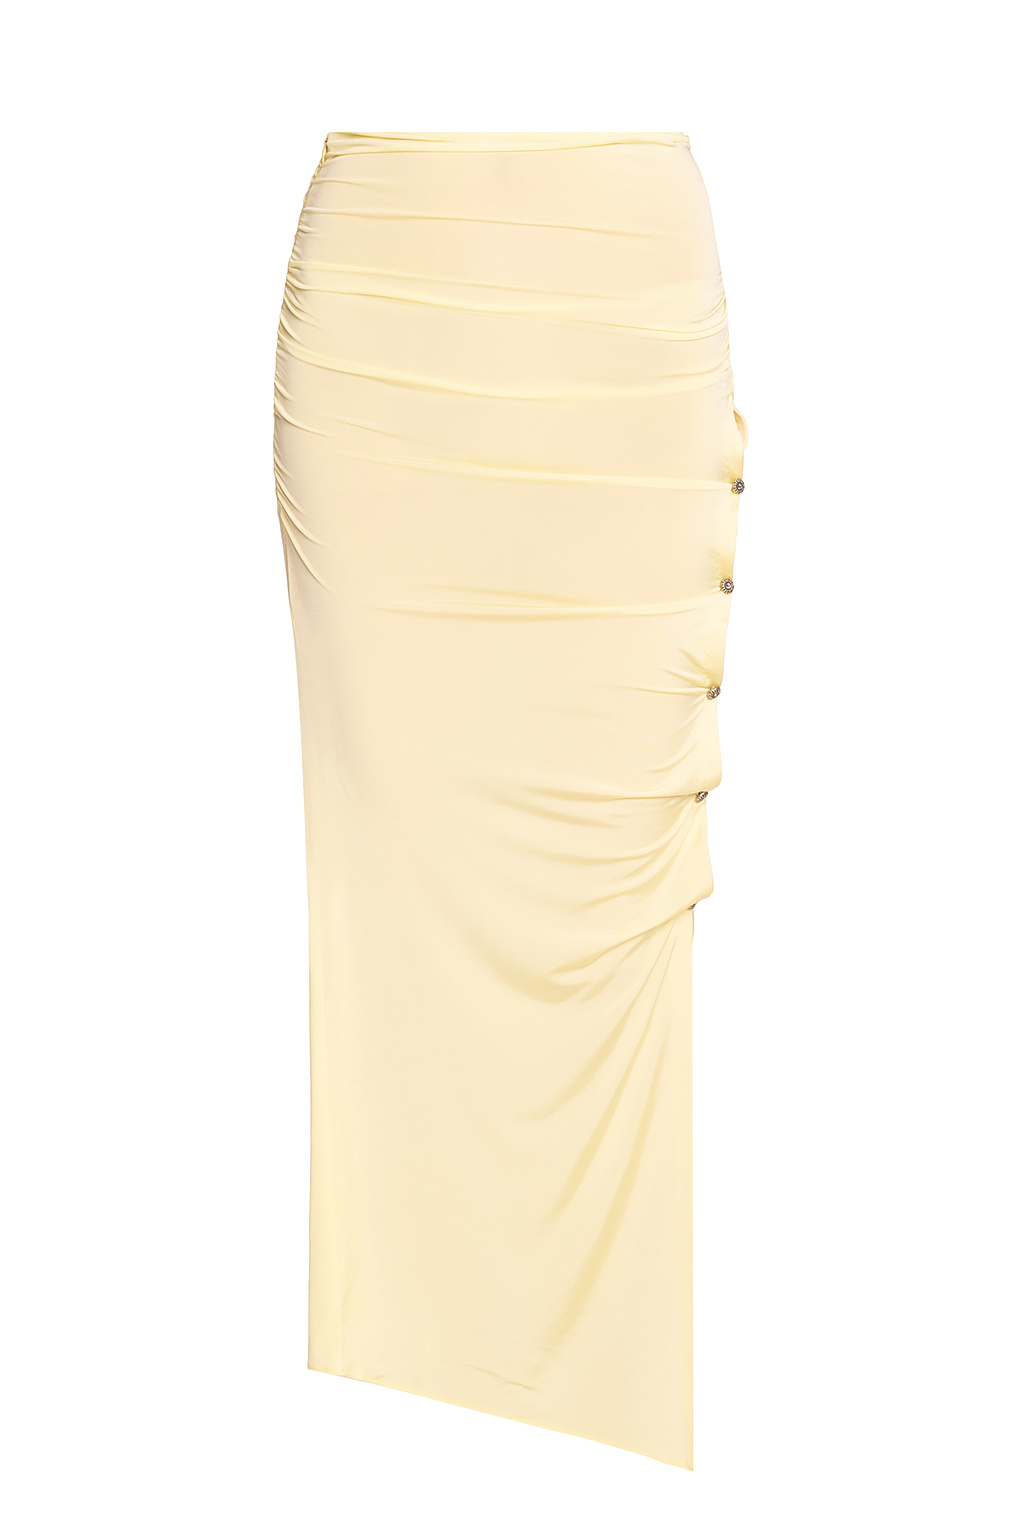 Acne Studios Ruched skirt